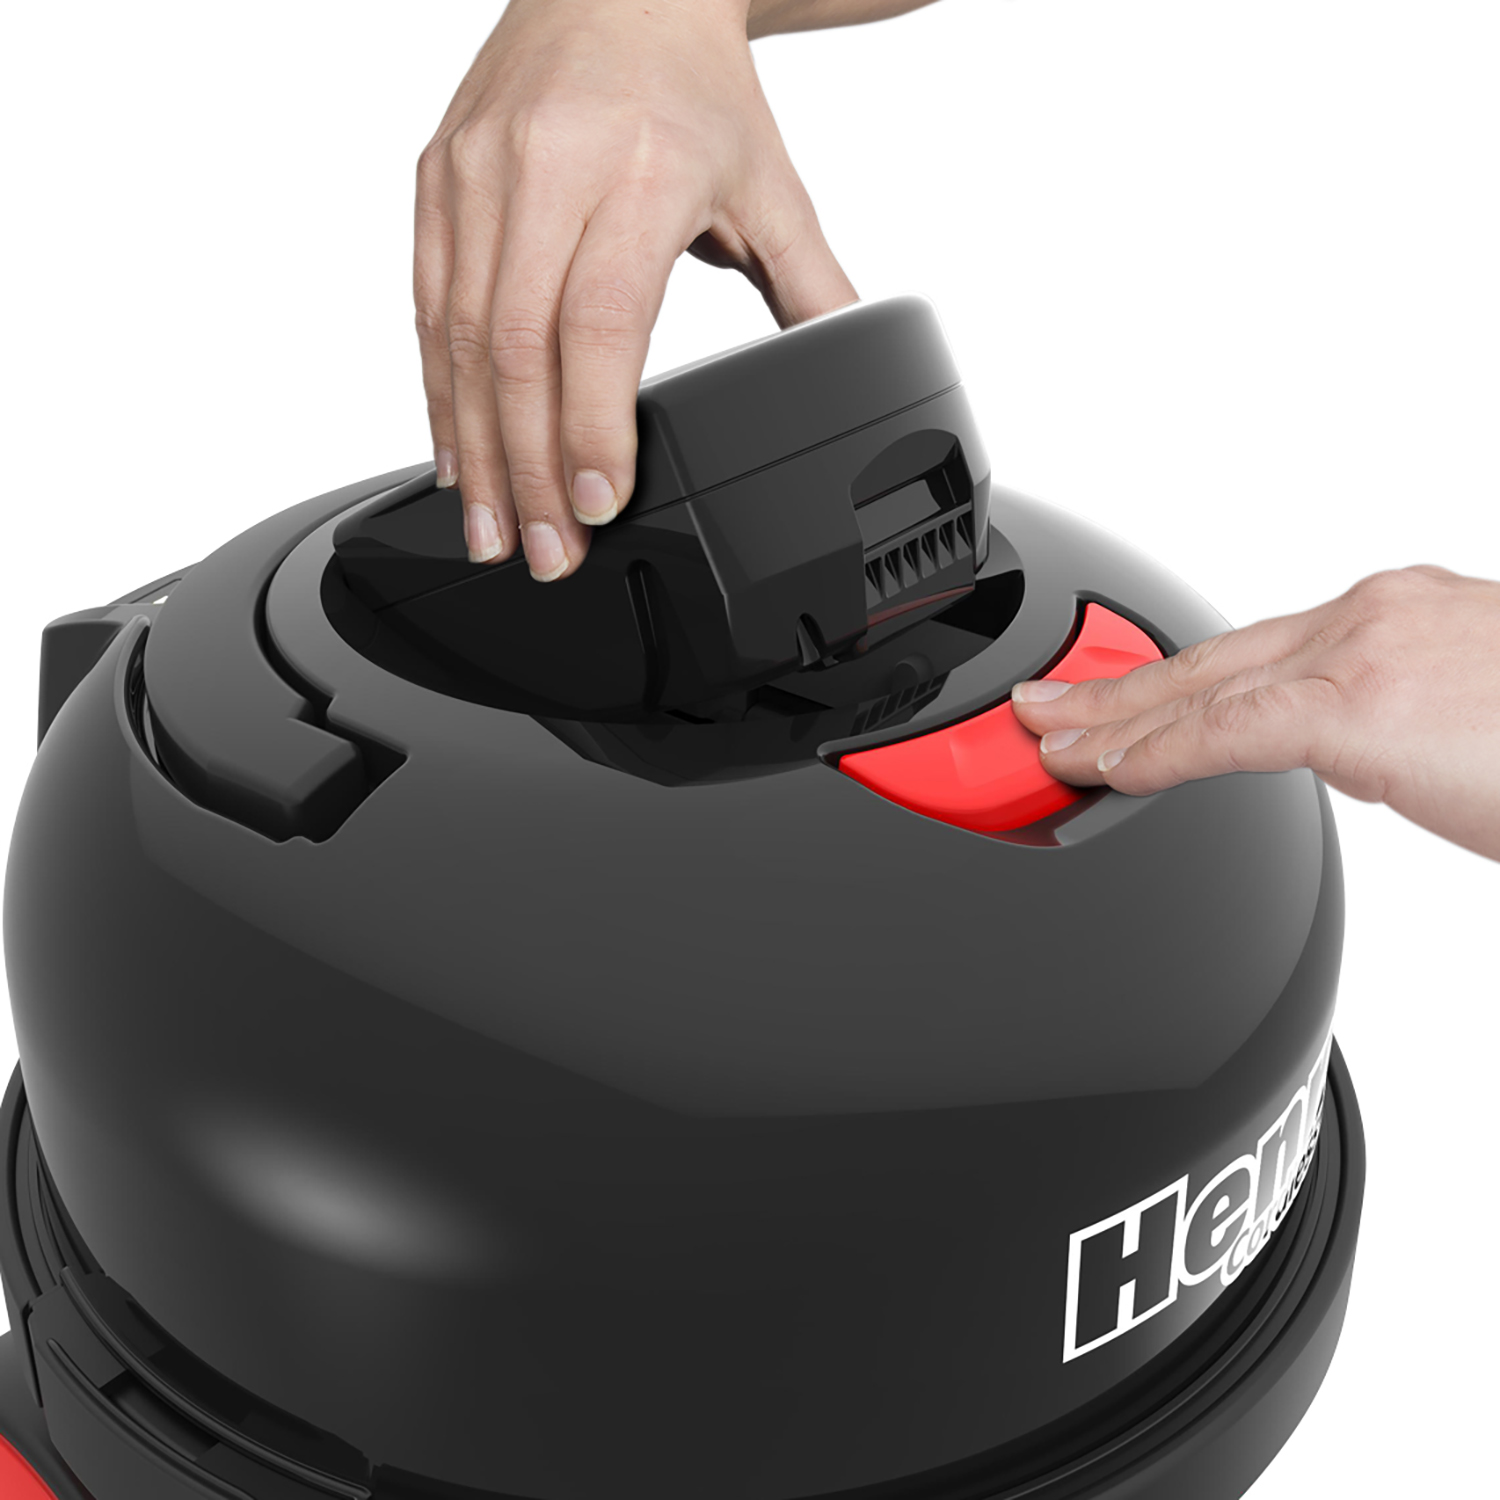 Numatic Cordless Henry Vacuum Cleaner 250W 6 Litre Capacity HVB160 Ref 907226